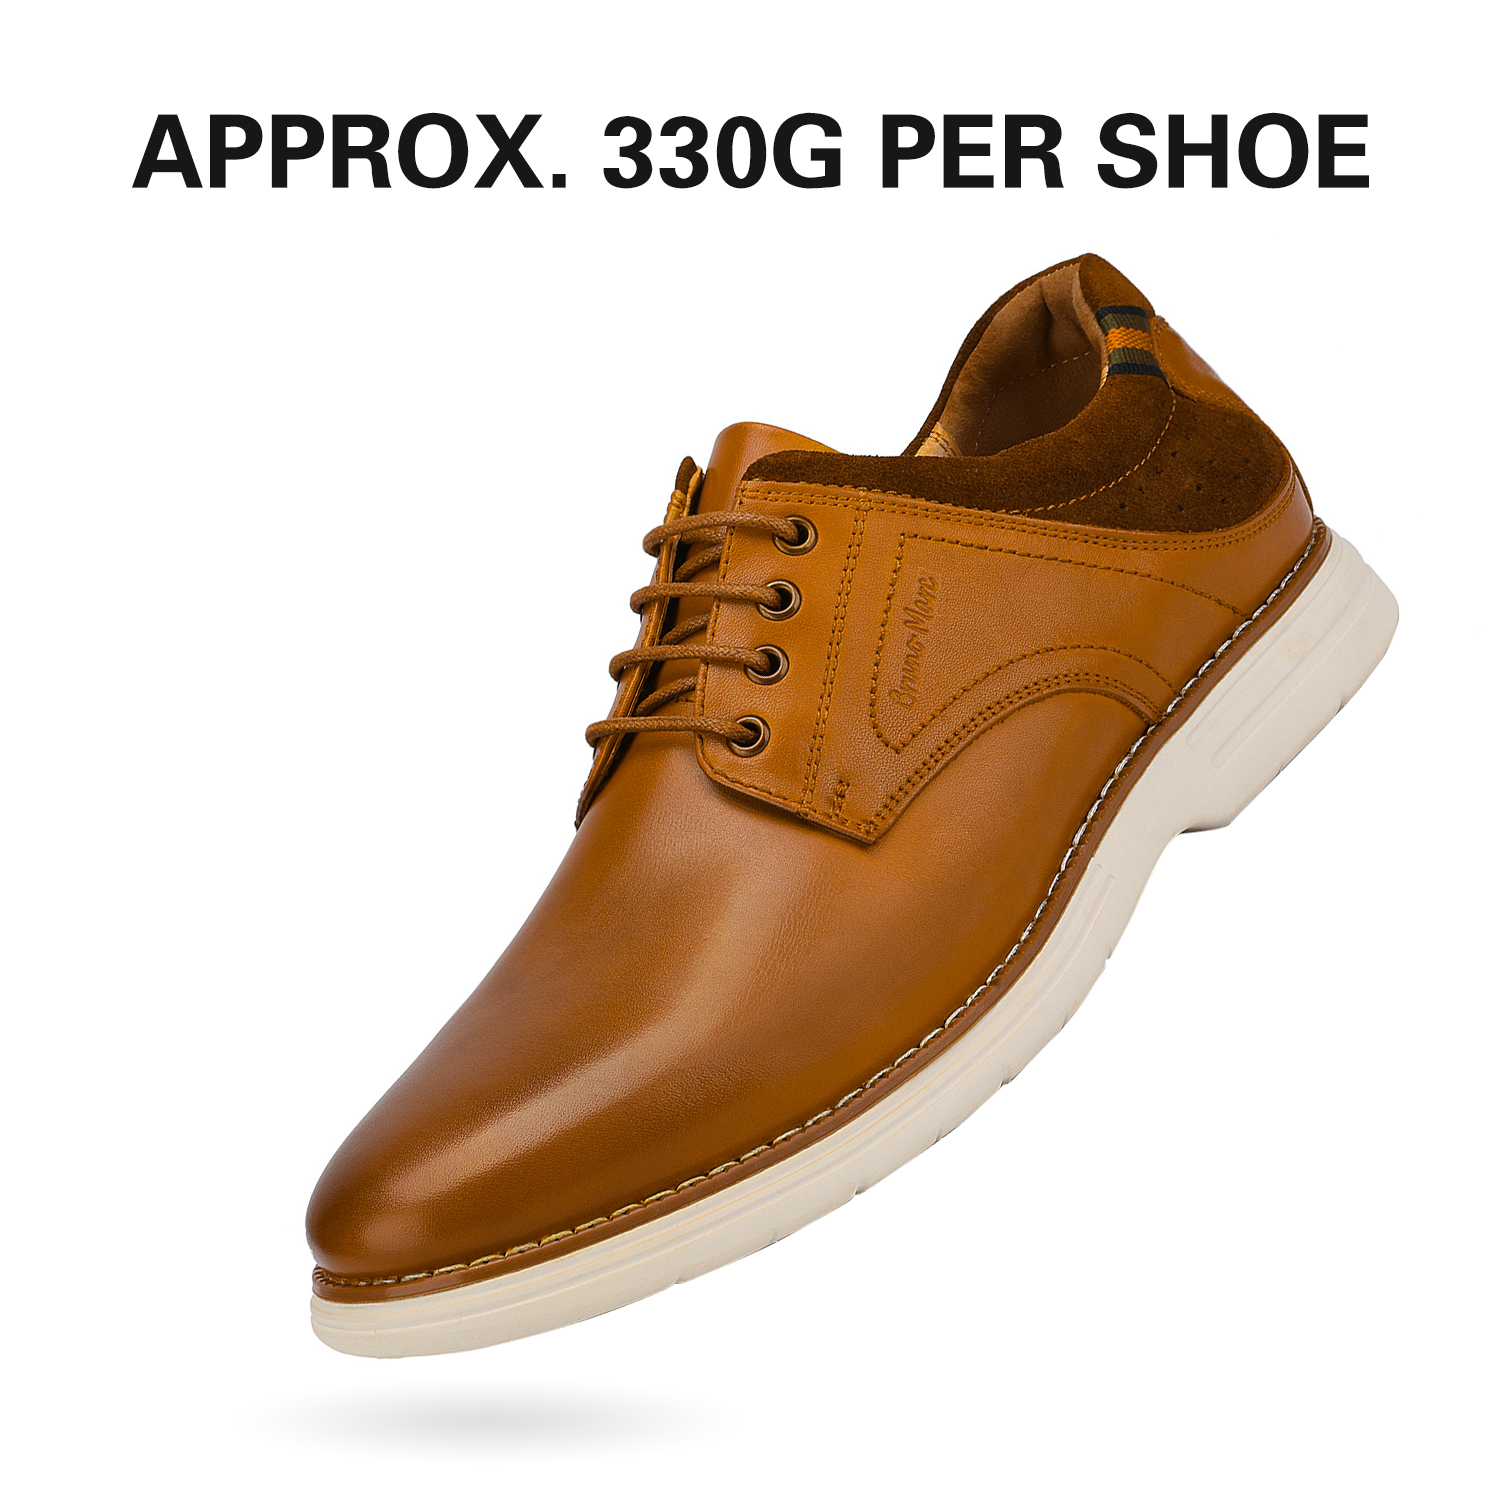 Mens-Fashion-Genuine-Leather-Business-Dress-Sneakers-Casual-Lace-up-Oxford-Shoe thumbnail 29